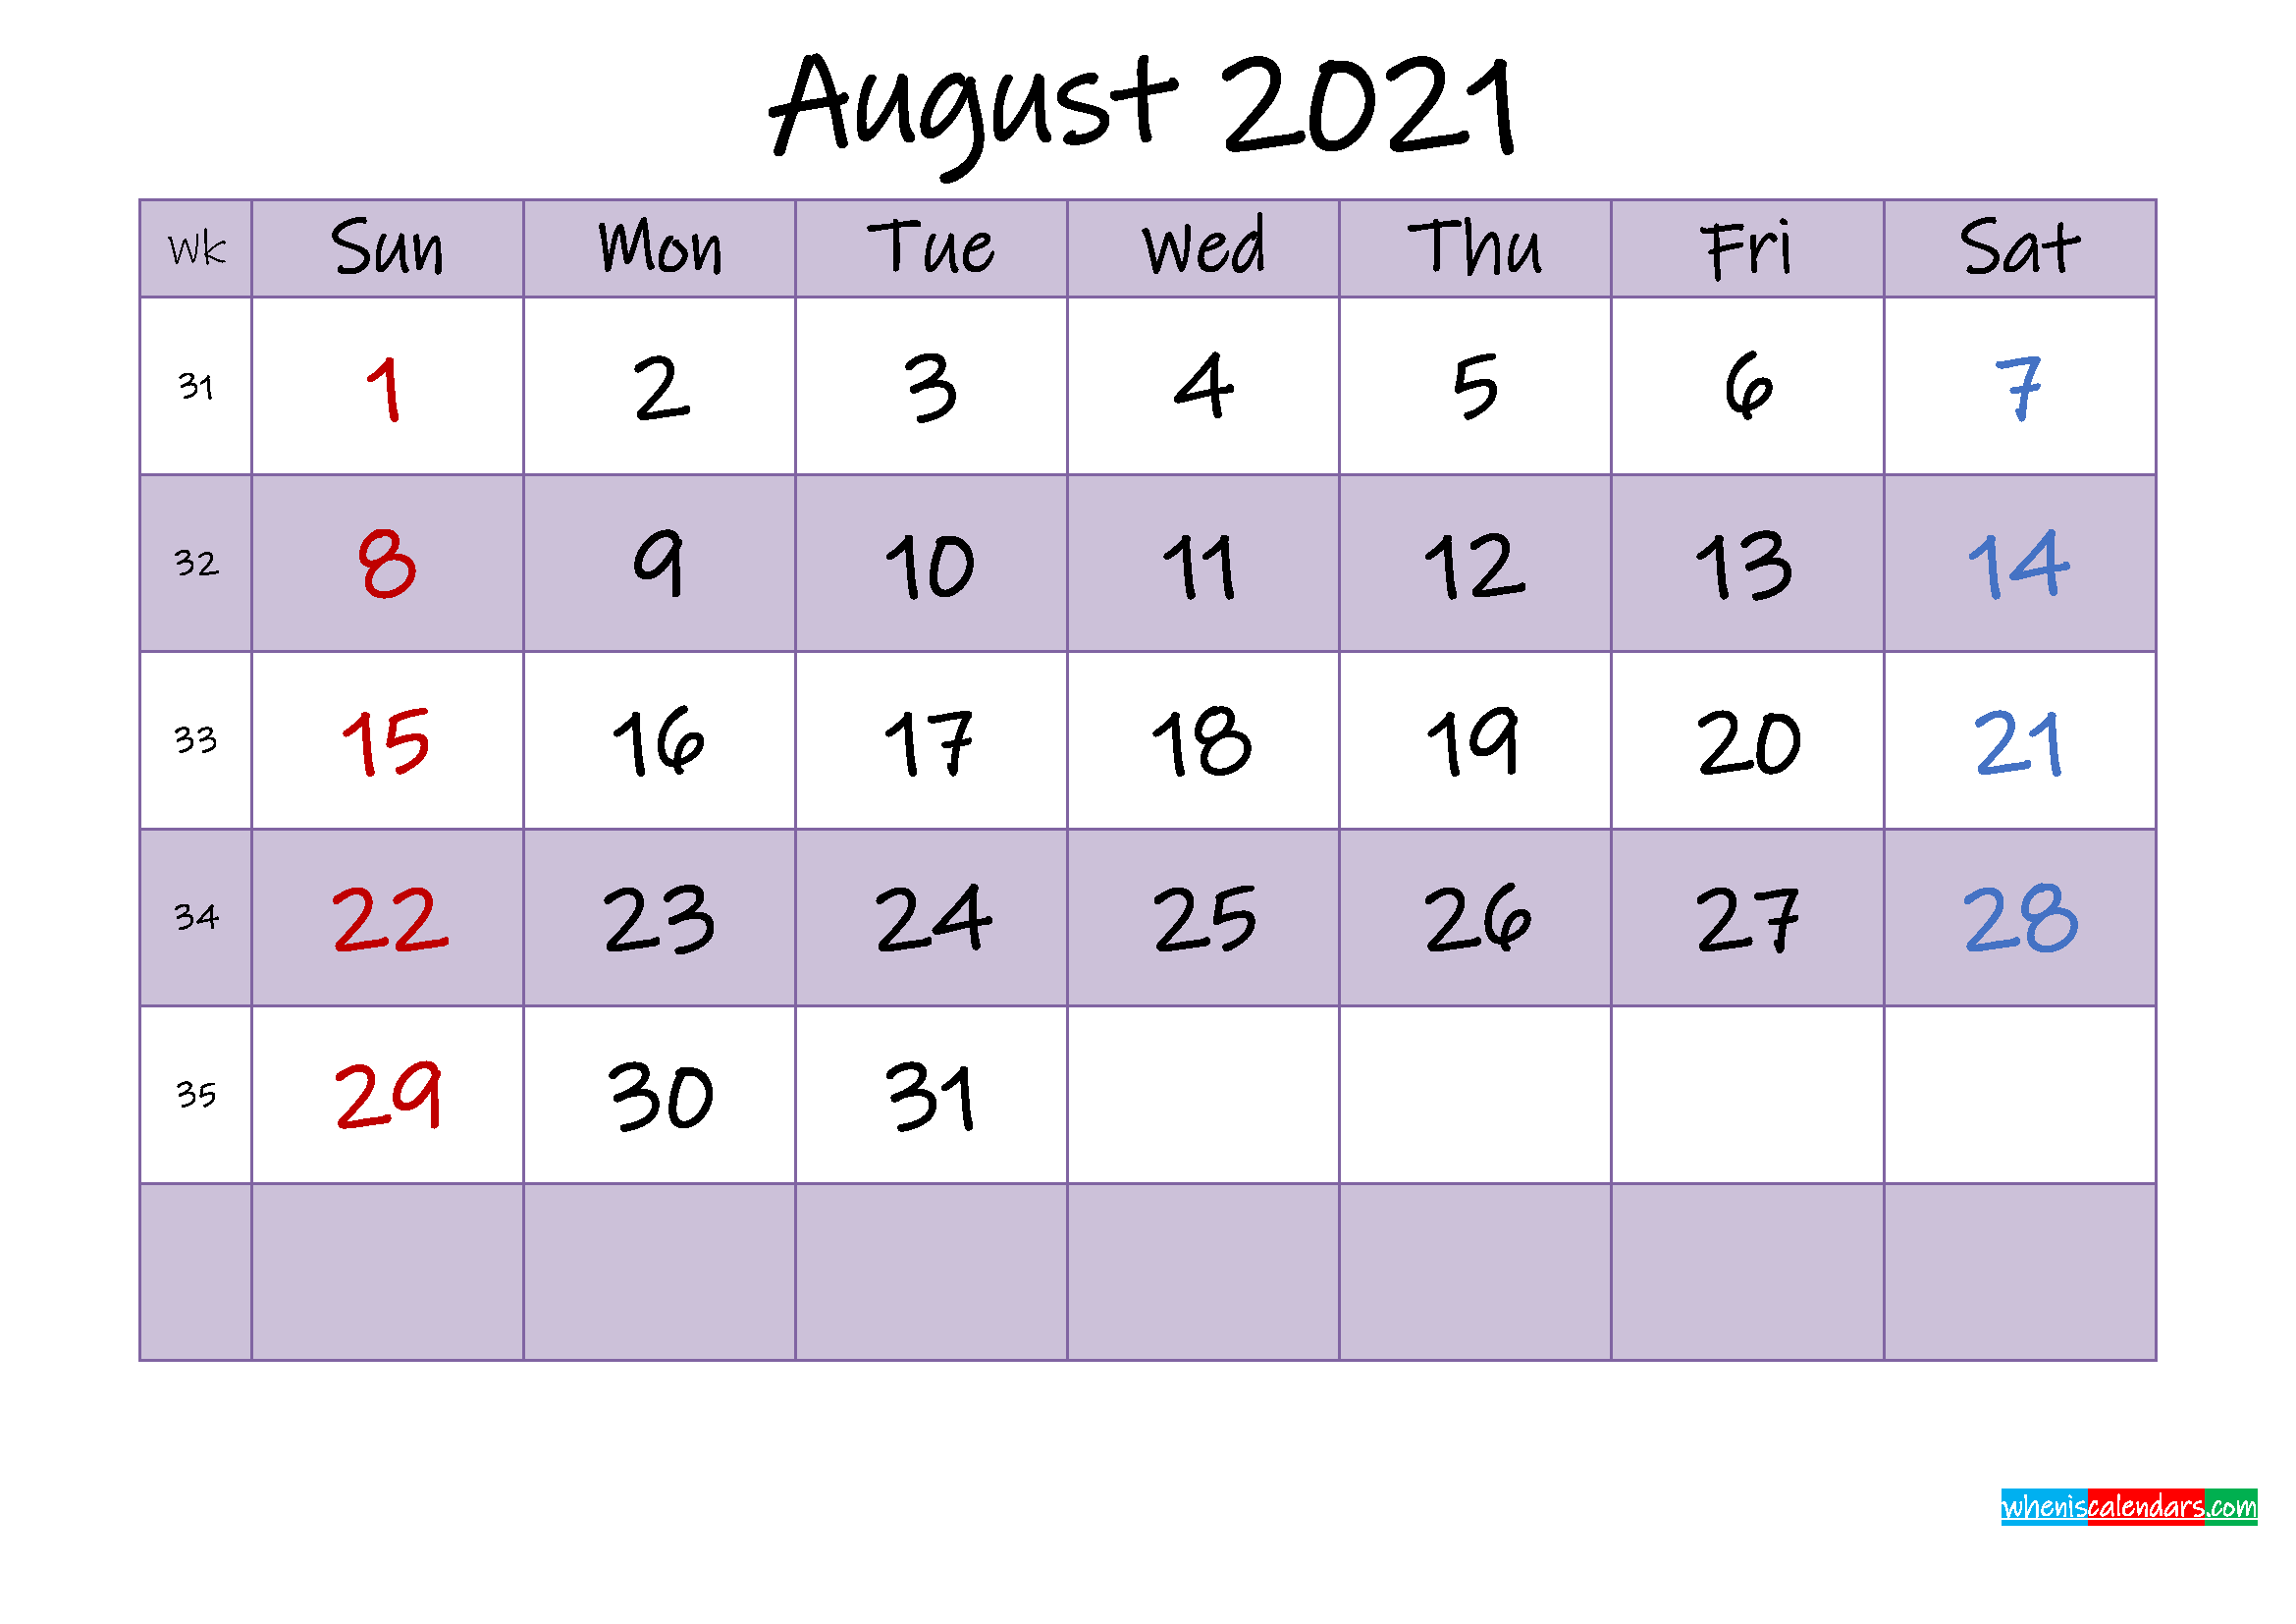 Editable August 2021 Calendar - Template No.ink21m464 ...